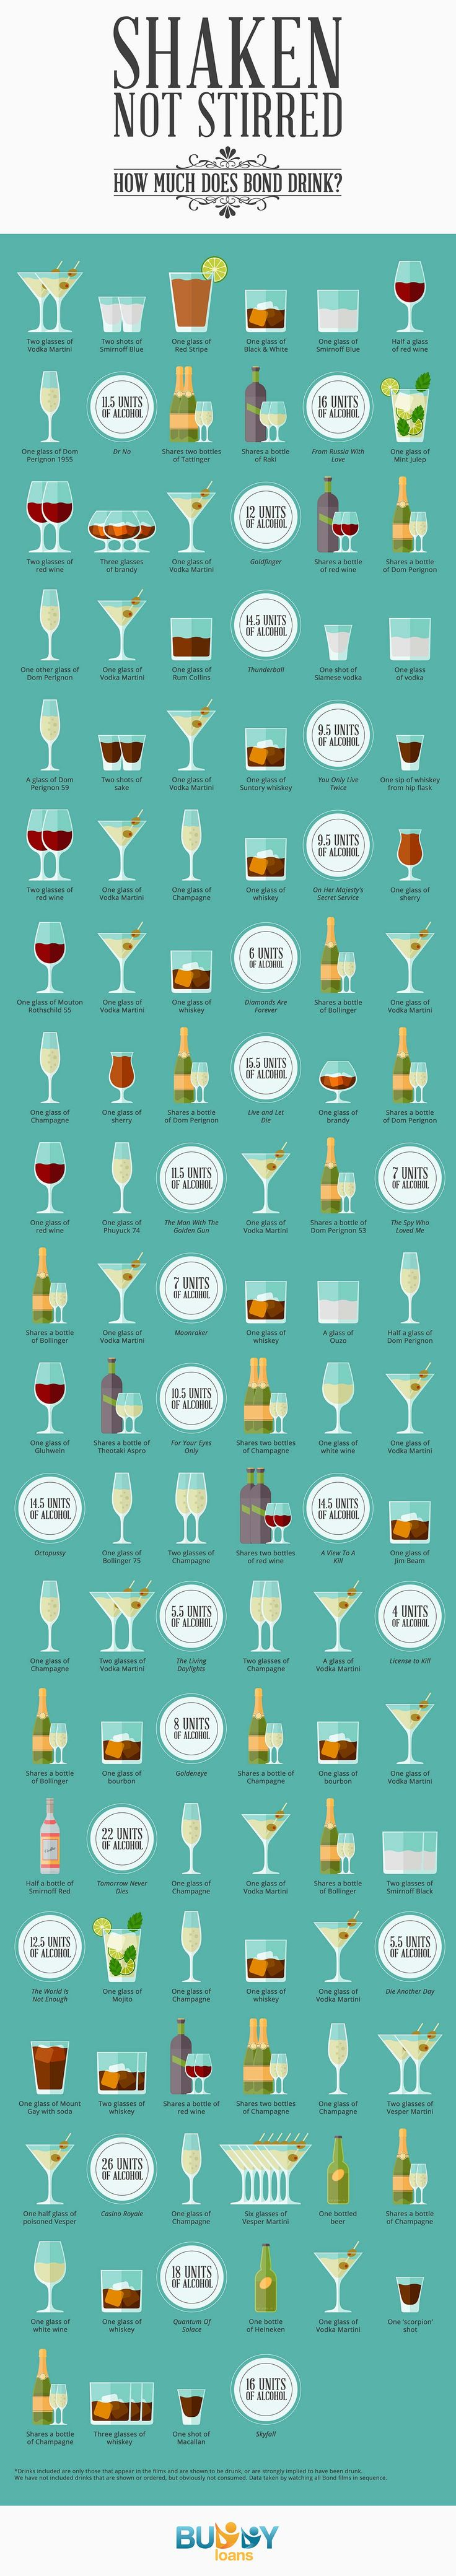 A Complete Guide To Bond's Drinking Habits | ShortList Magazine